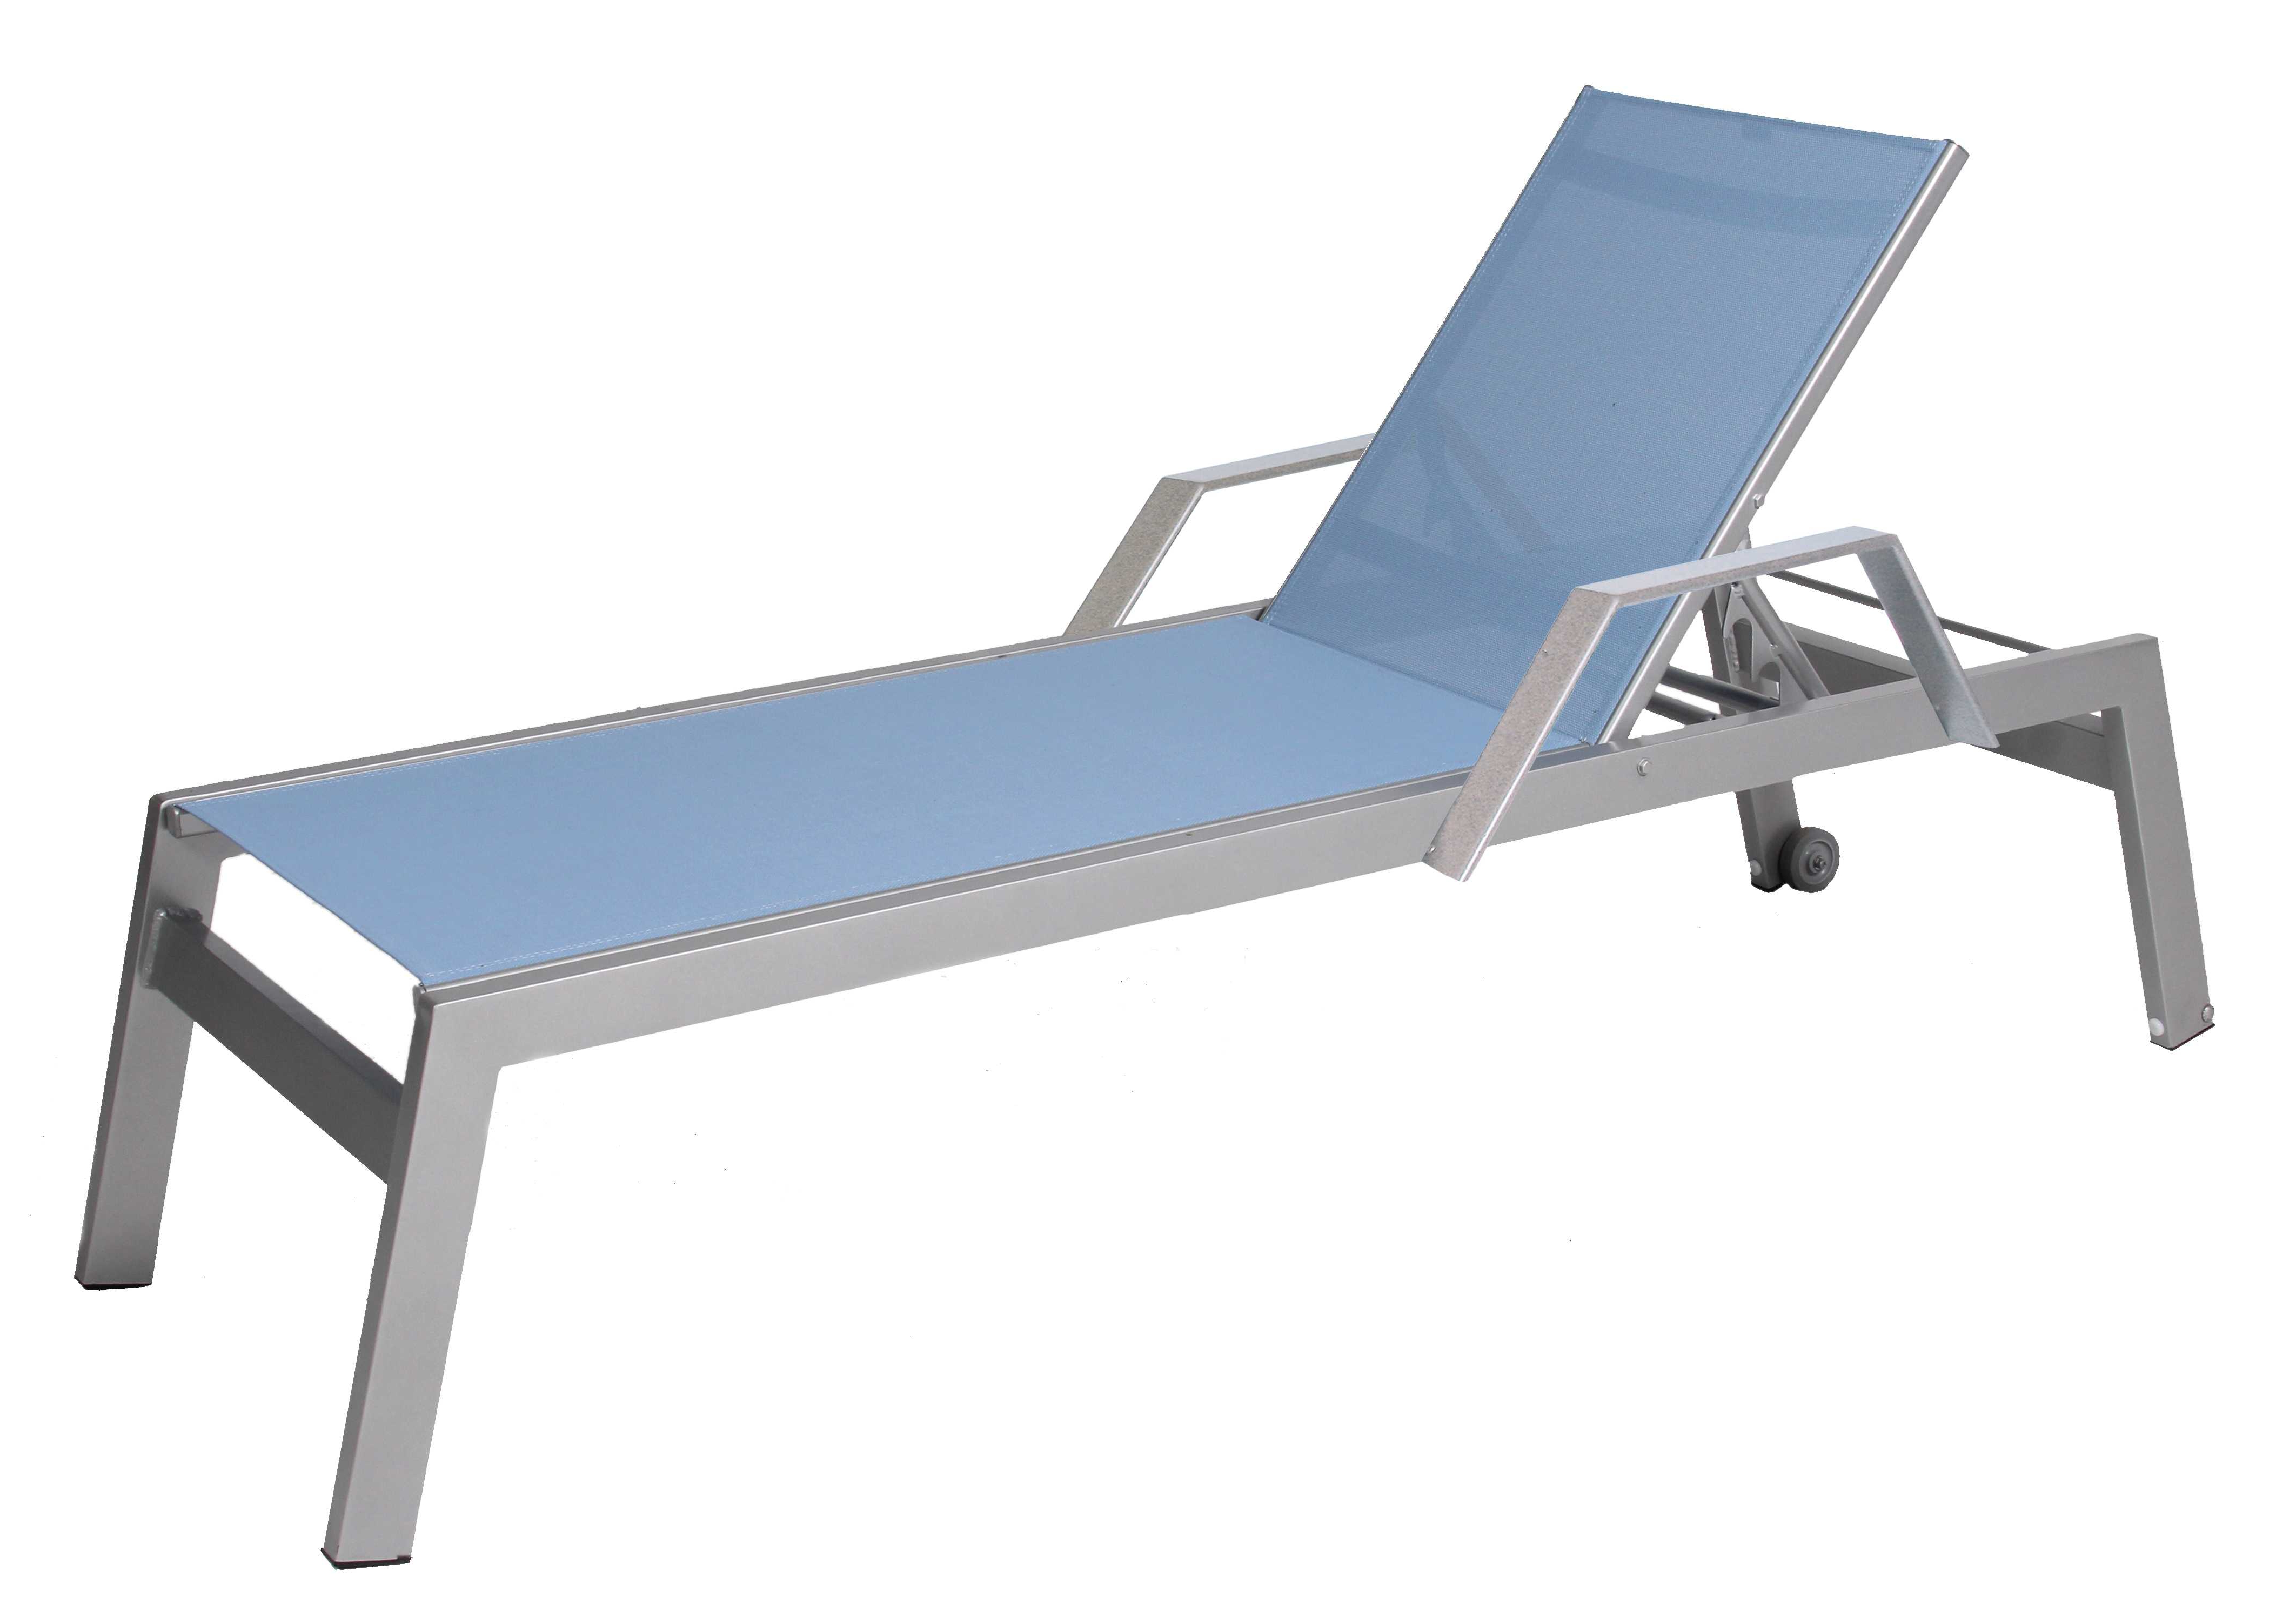 Aluminum Wheeled Chaise Lounges Pertaining To Newest Suncoast Vectra Rise Sling Aluminum Chaise Lounge Arms With Wheels (View 5 of 25)